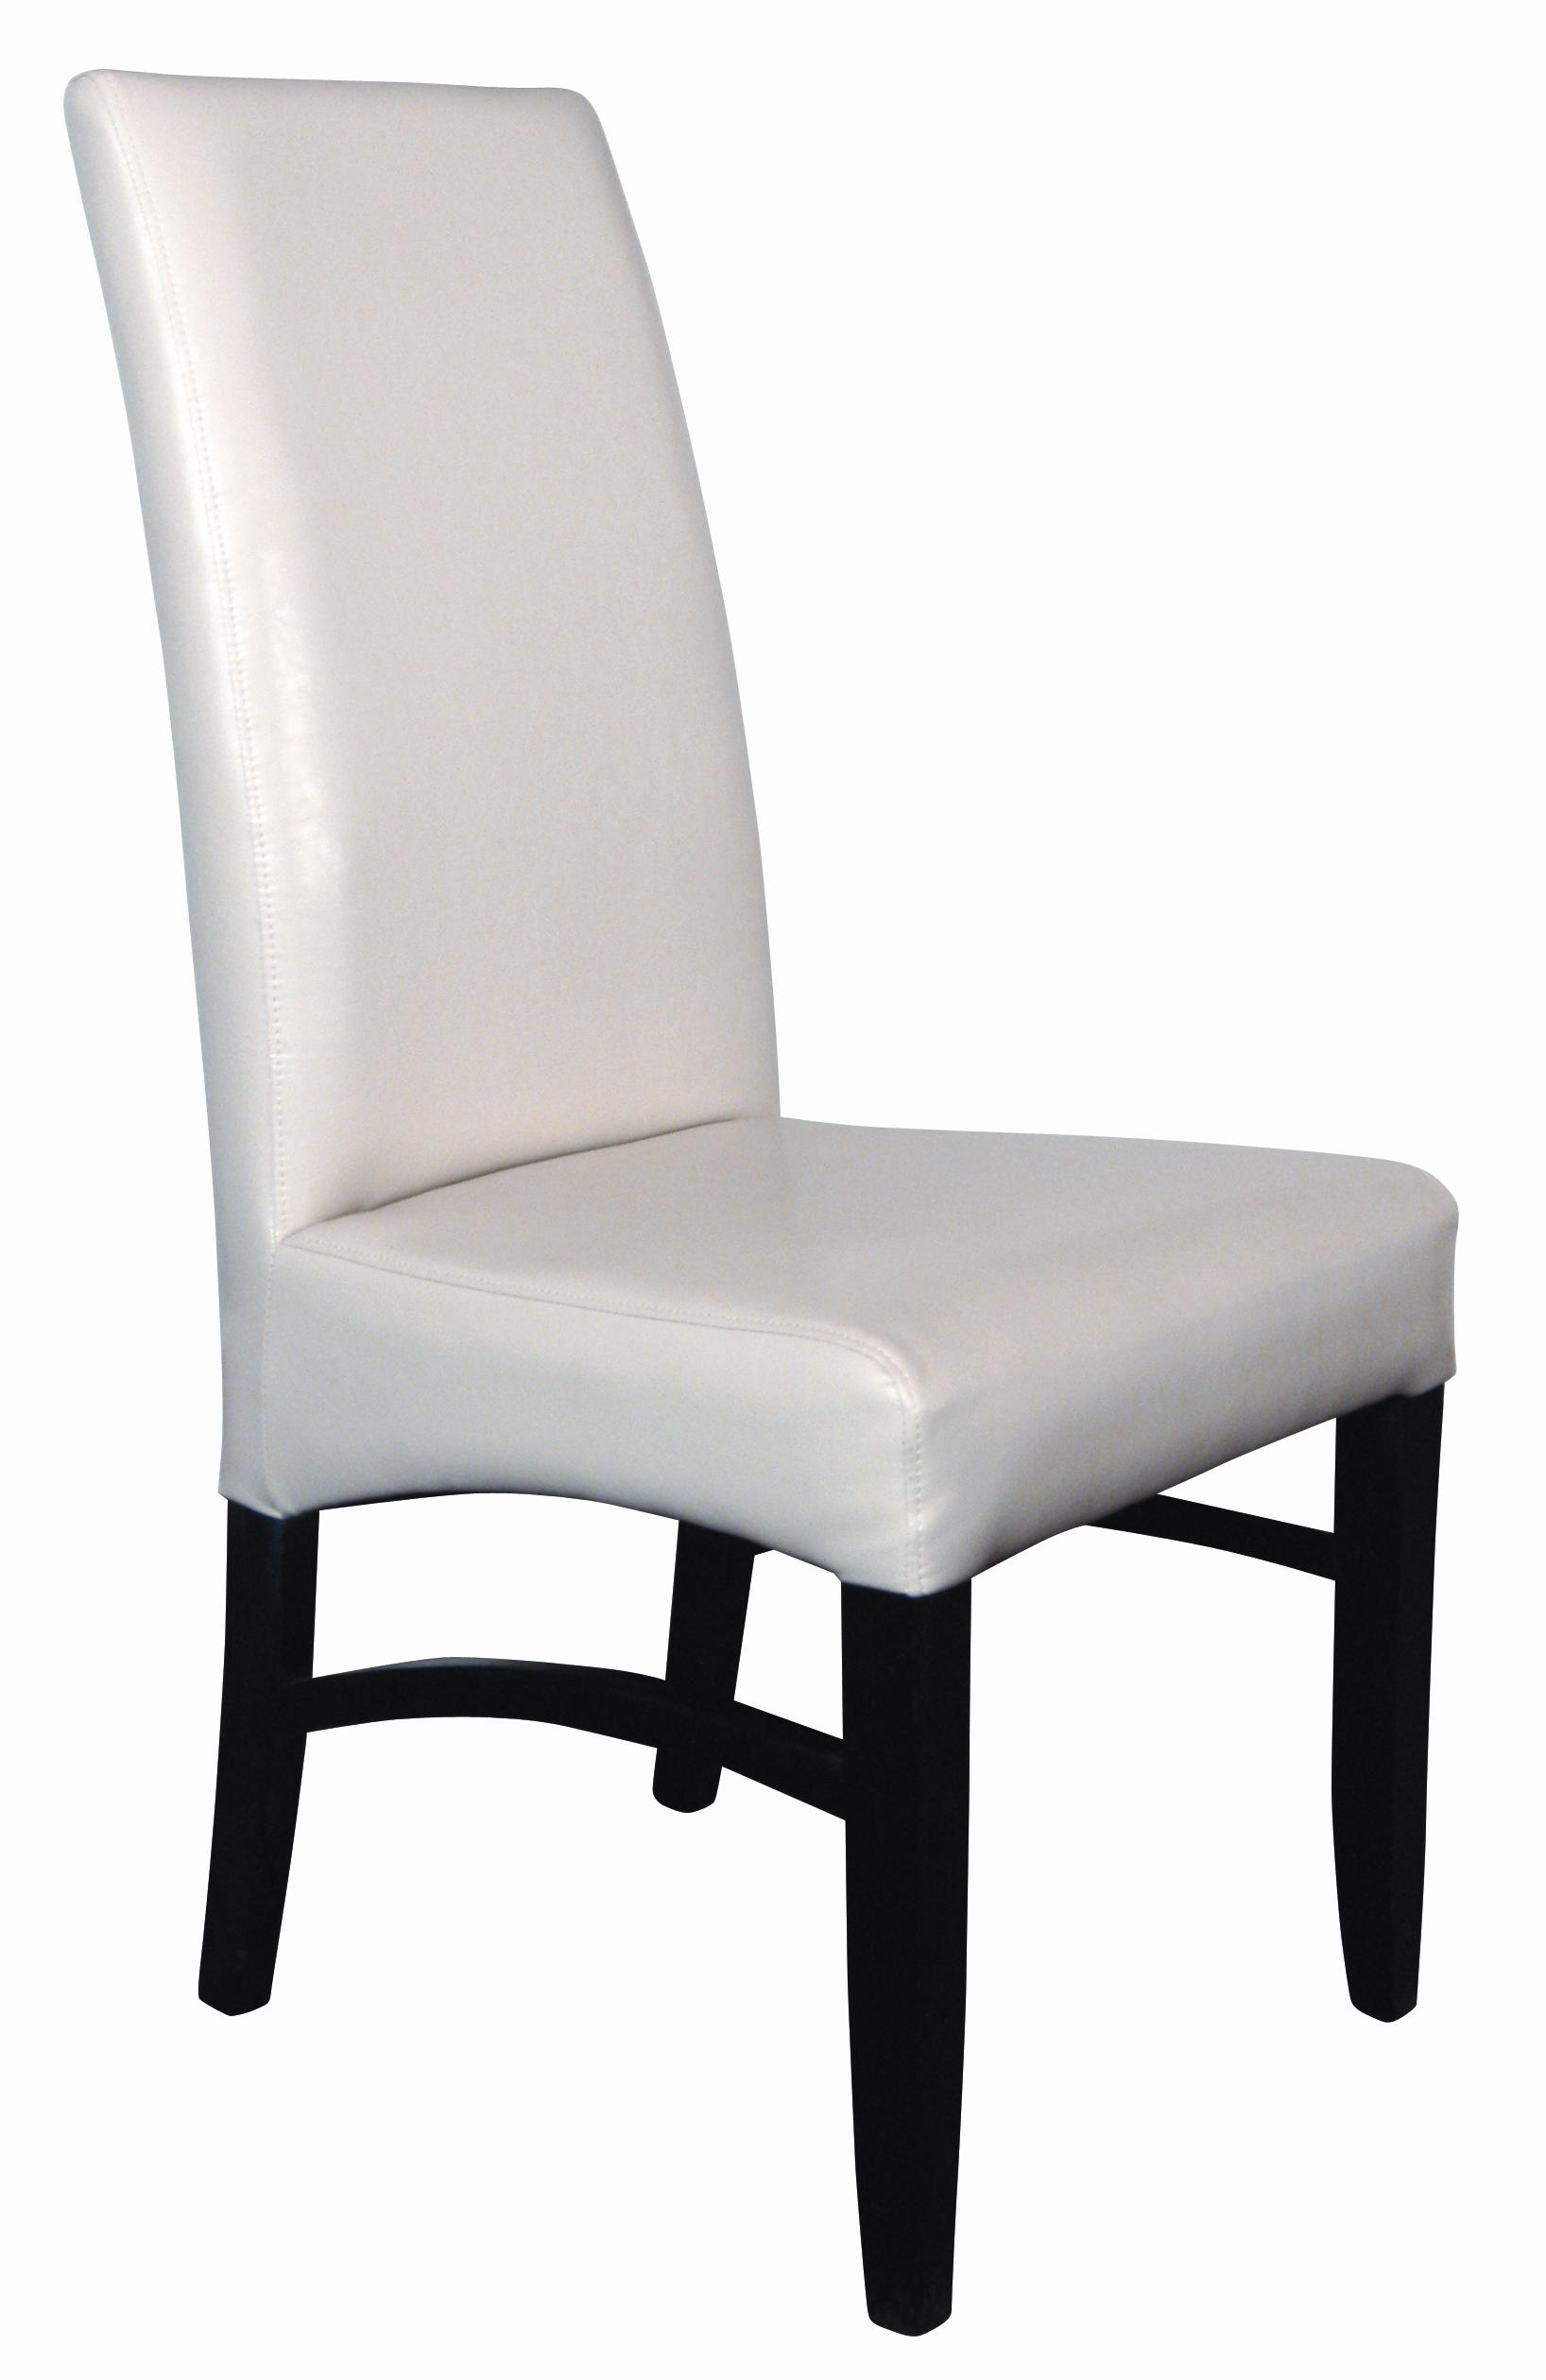 Stunning Restaurant Chair Design 1636 x 2518 · 146 kB · jpeg